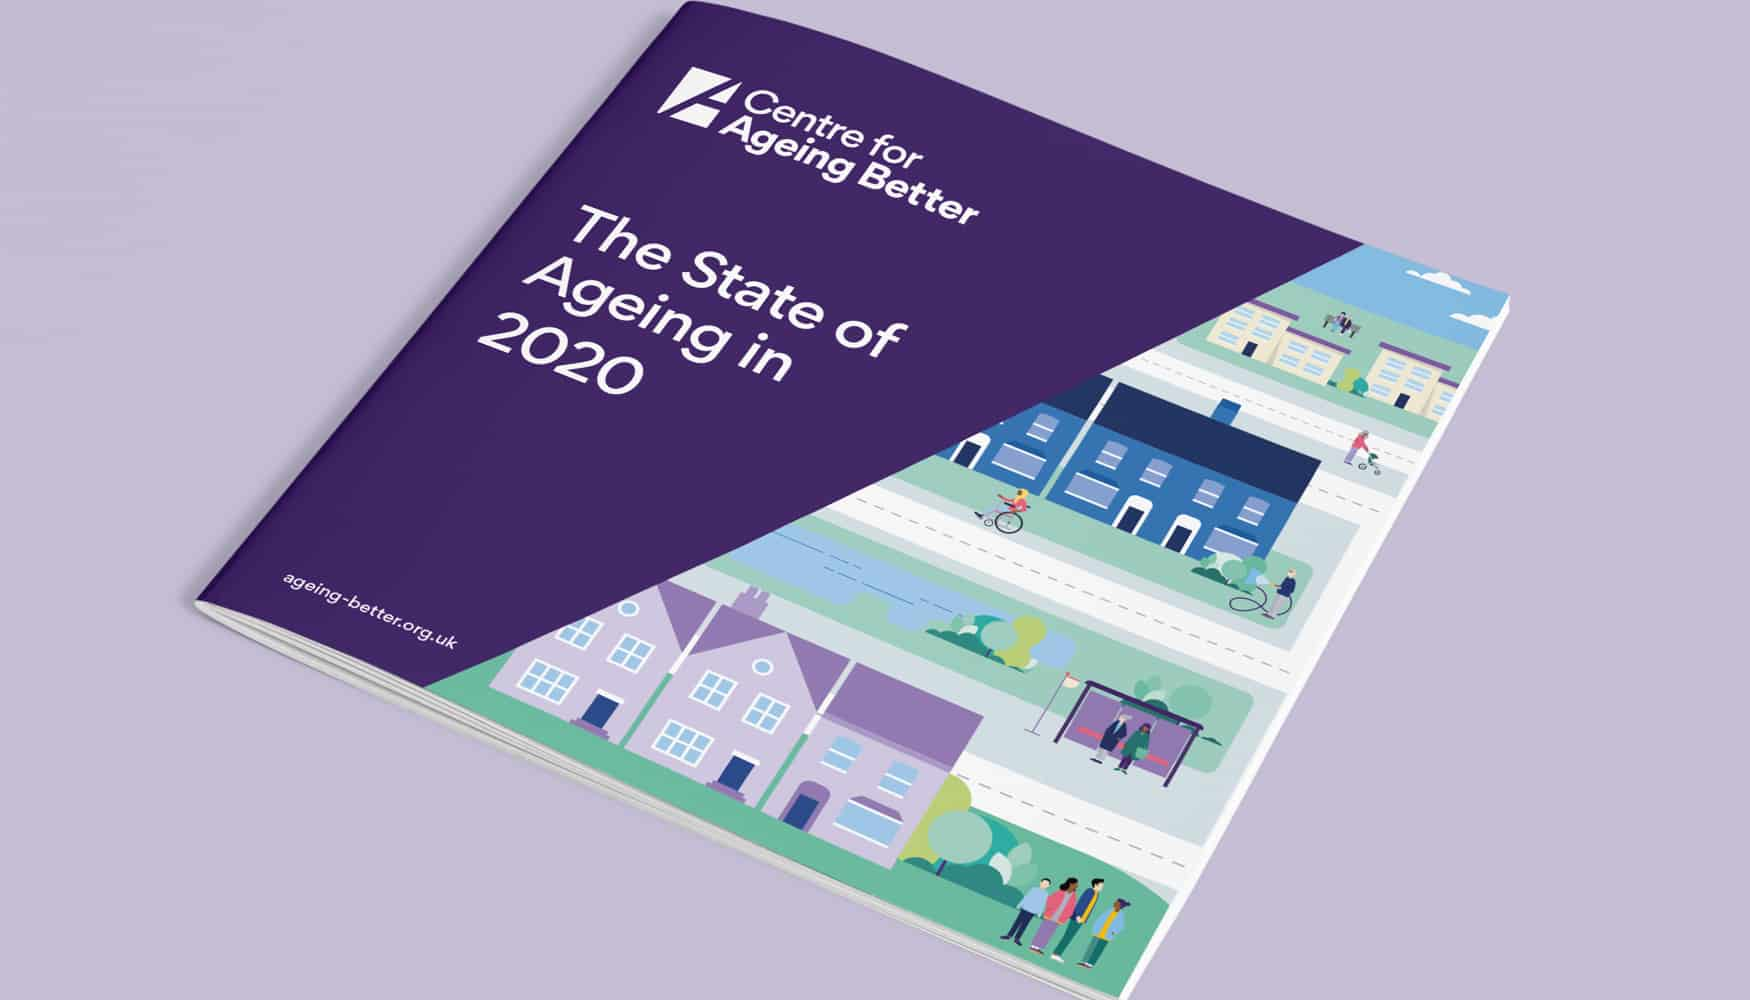 Ageing Better UK_The State of Ageing in 2020 report